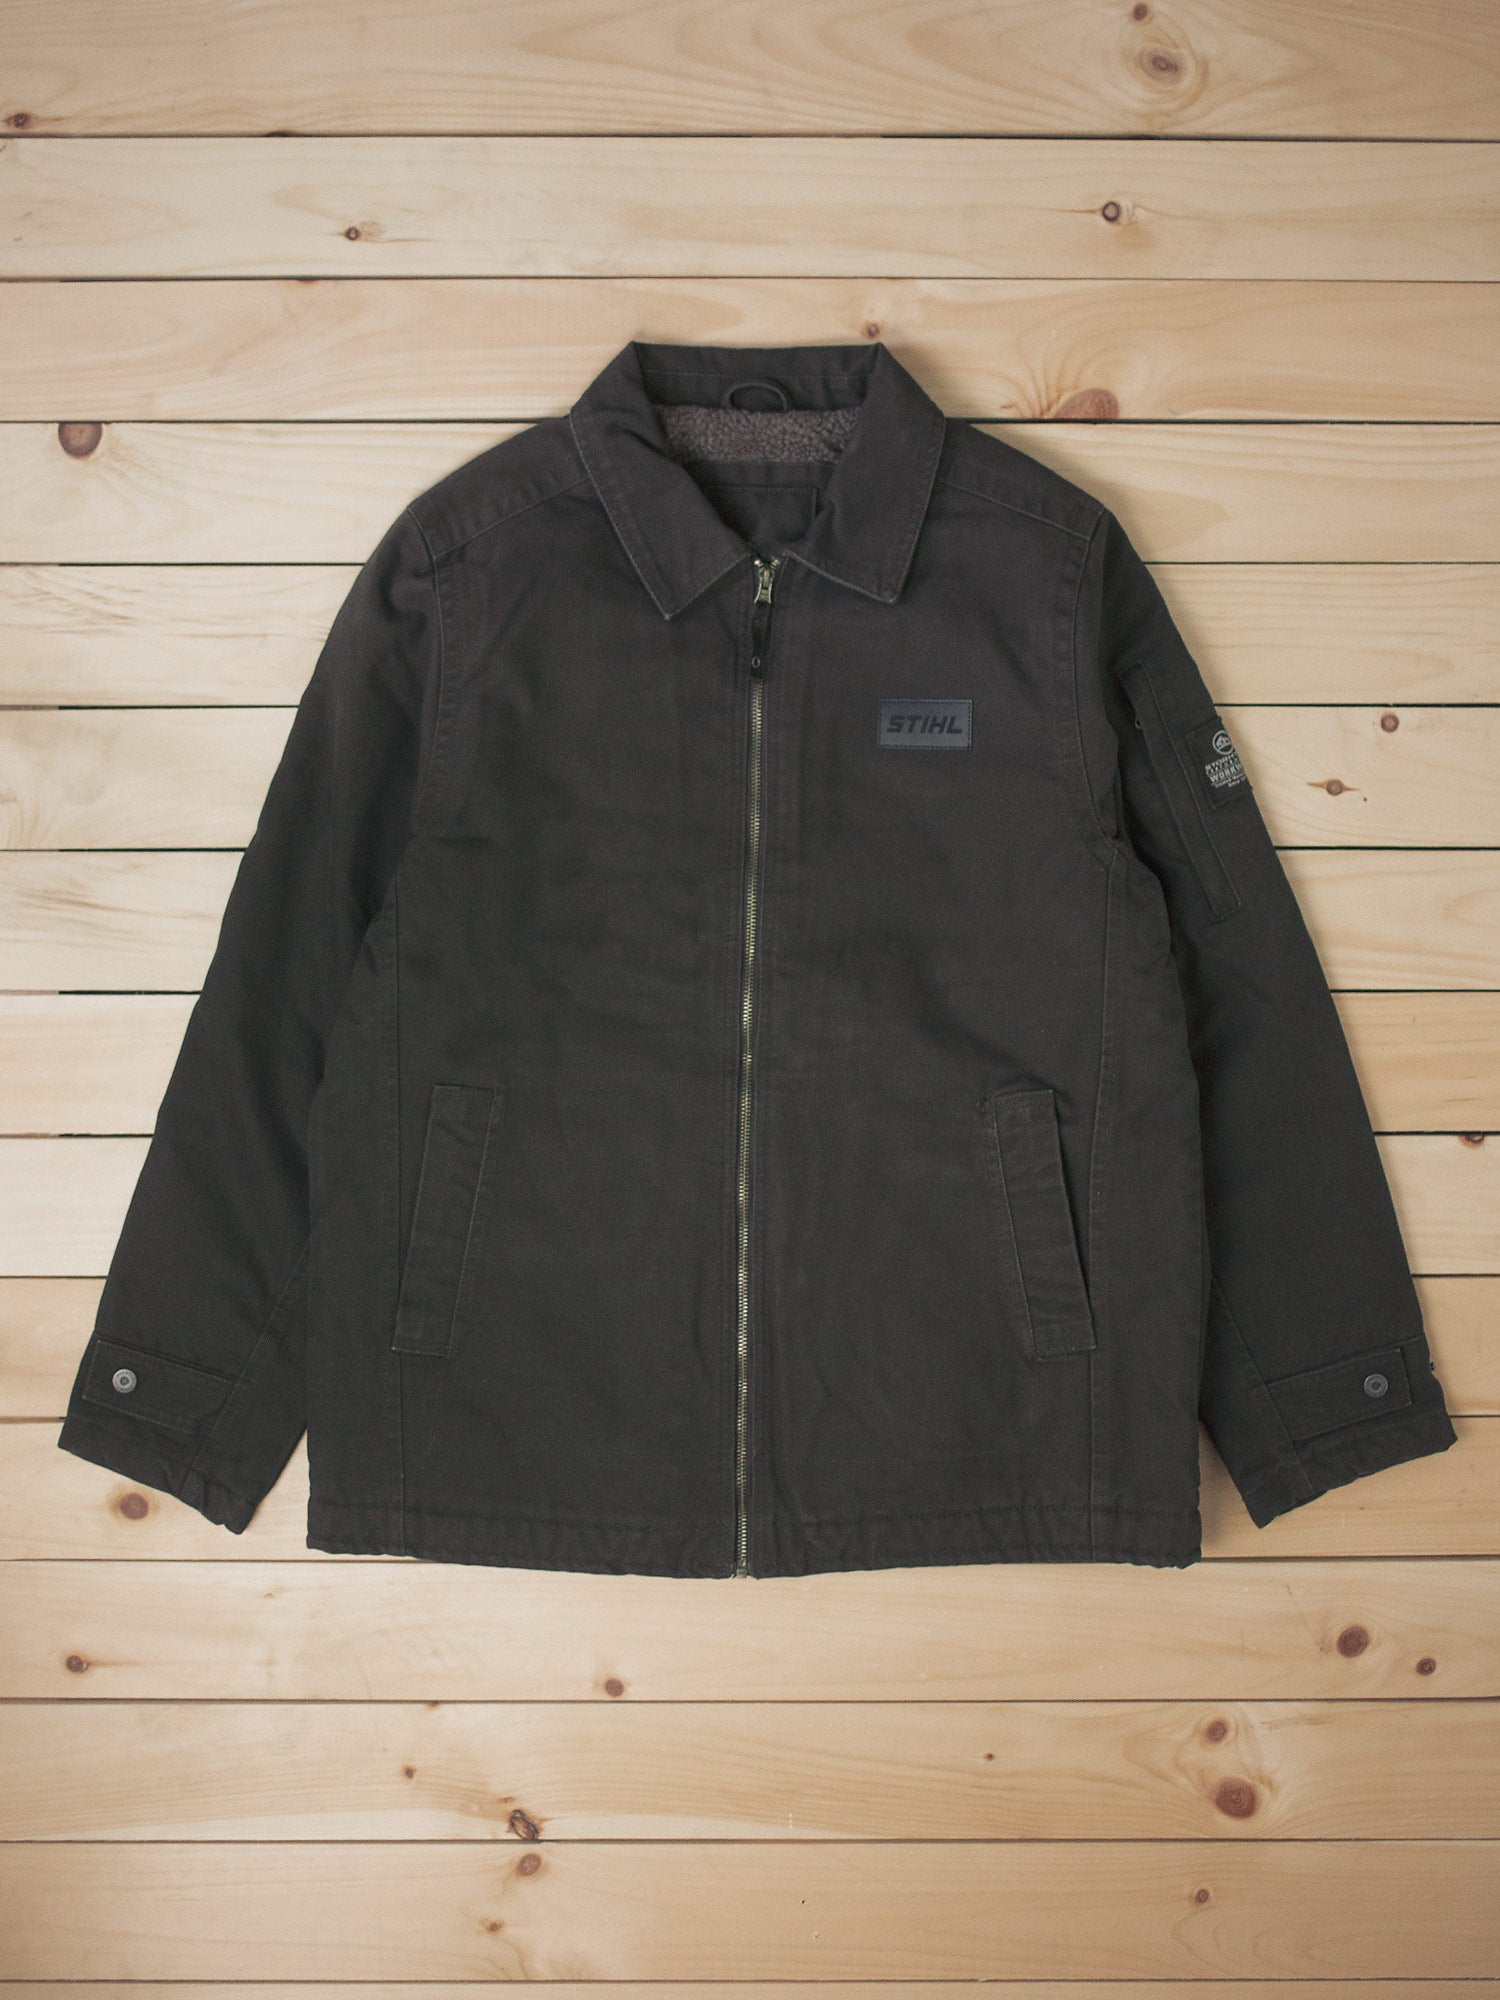 STIHL STONE RIDGE WORK JACKET